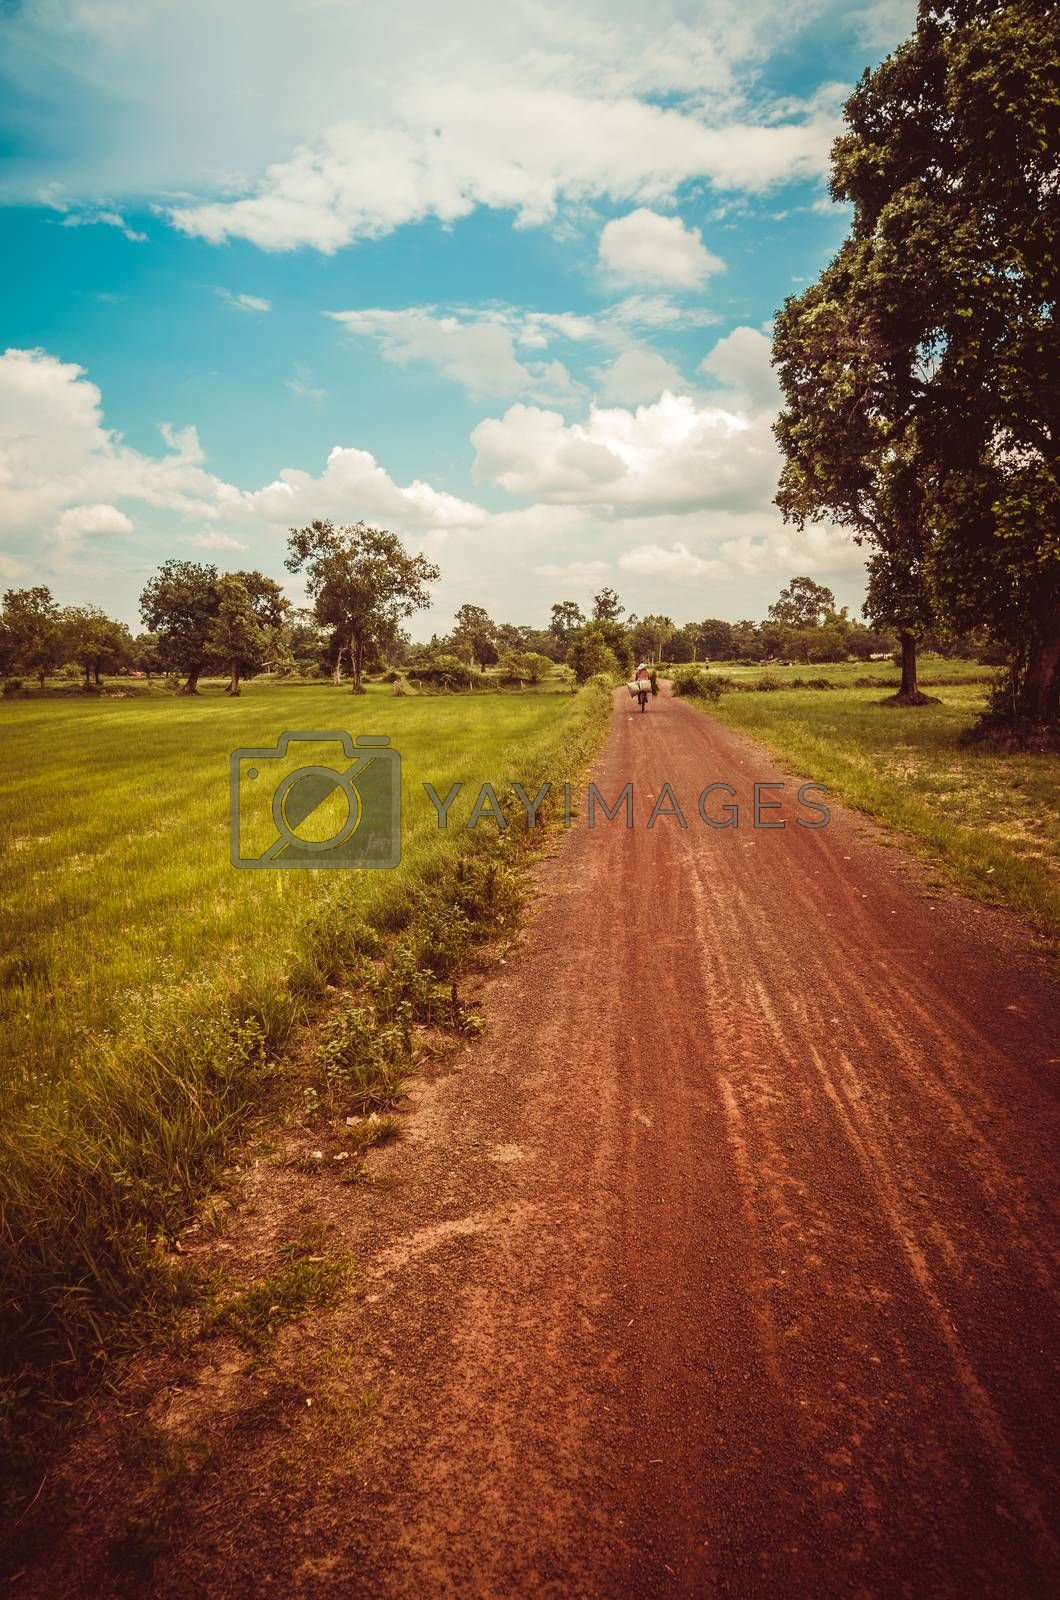 Road soil by sweetcrisis